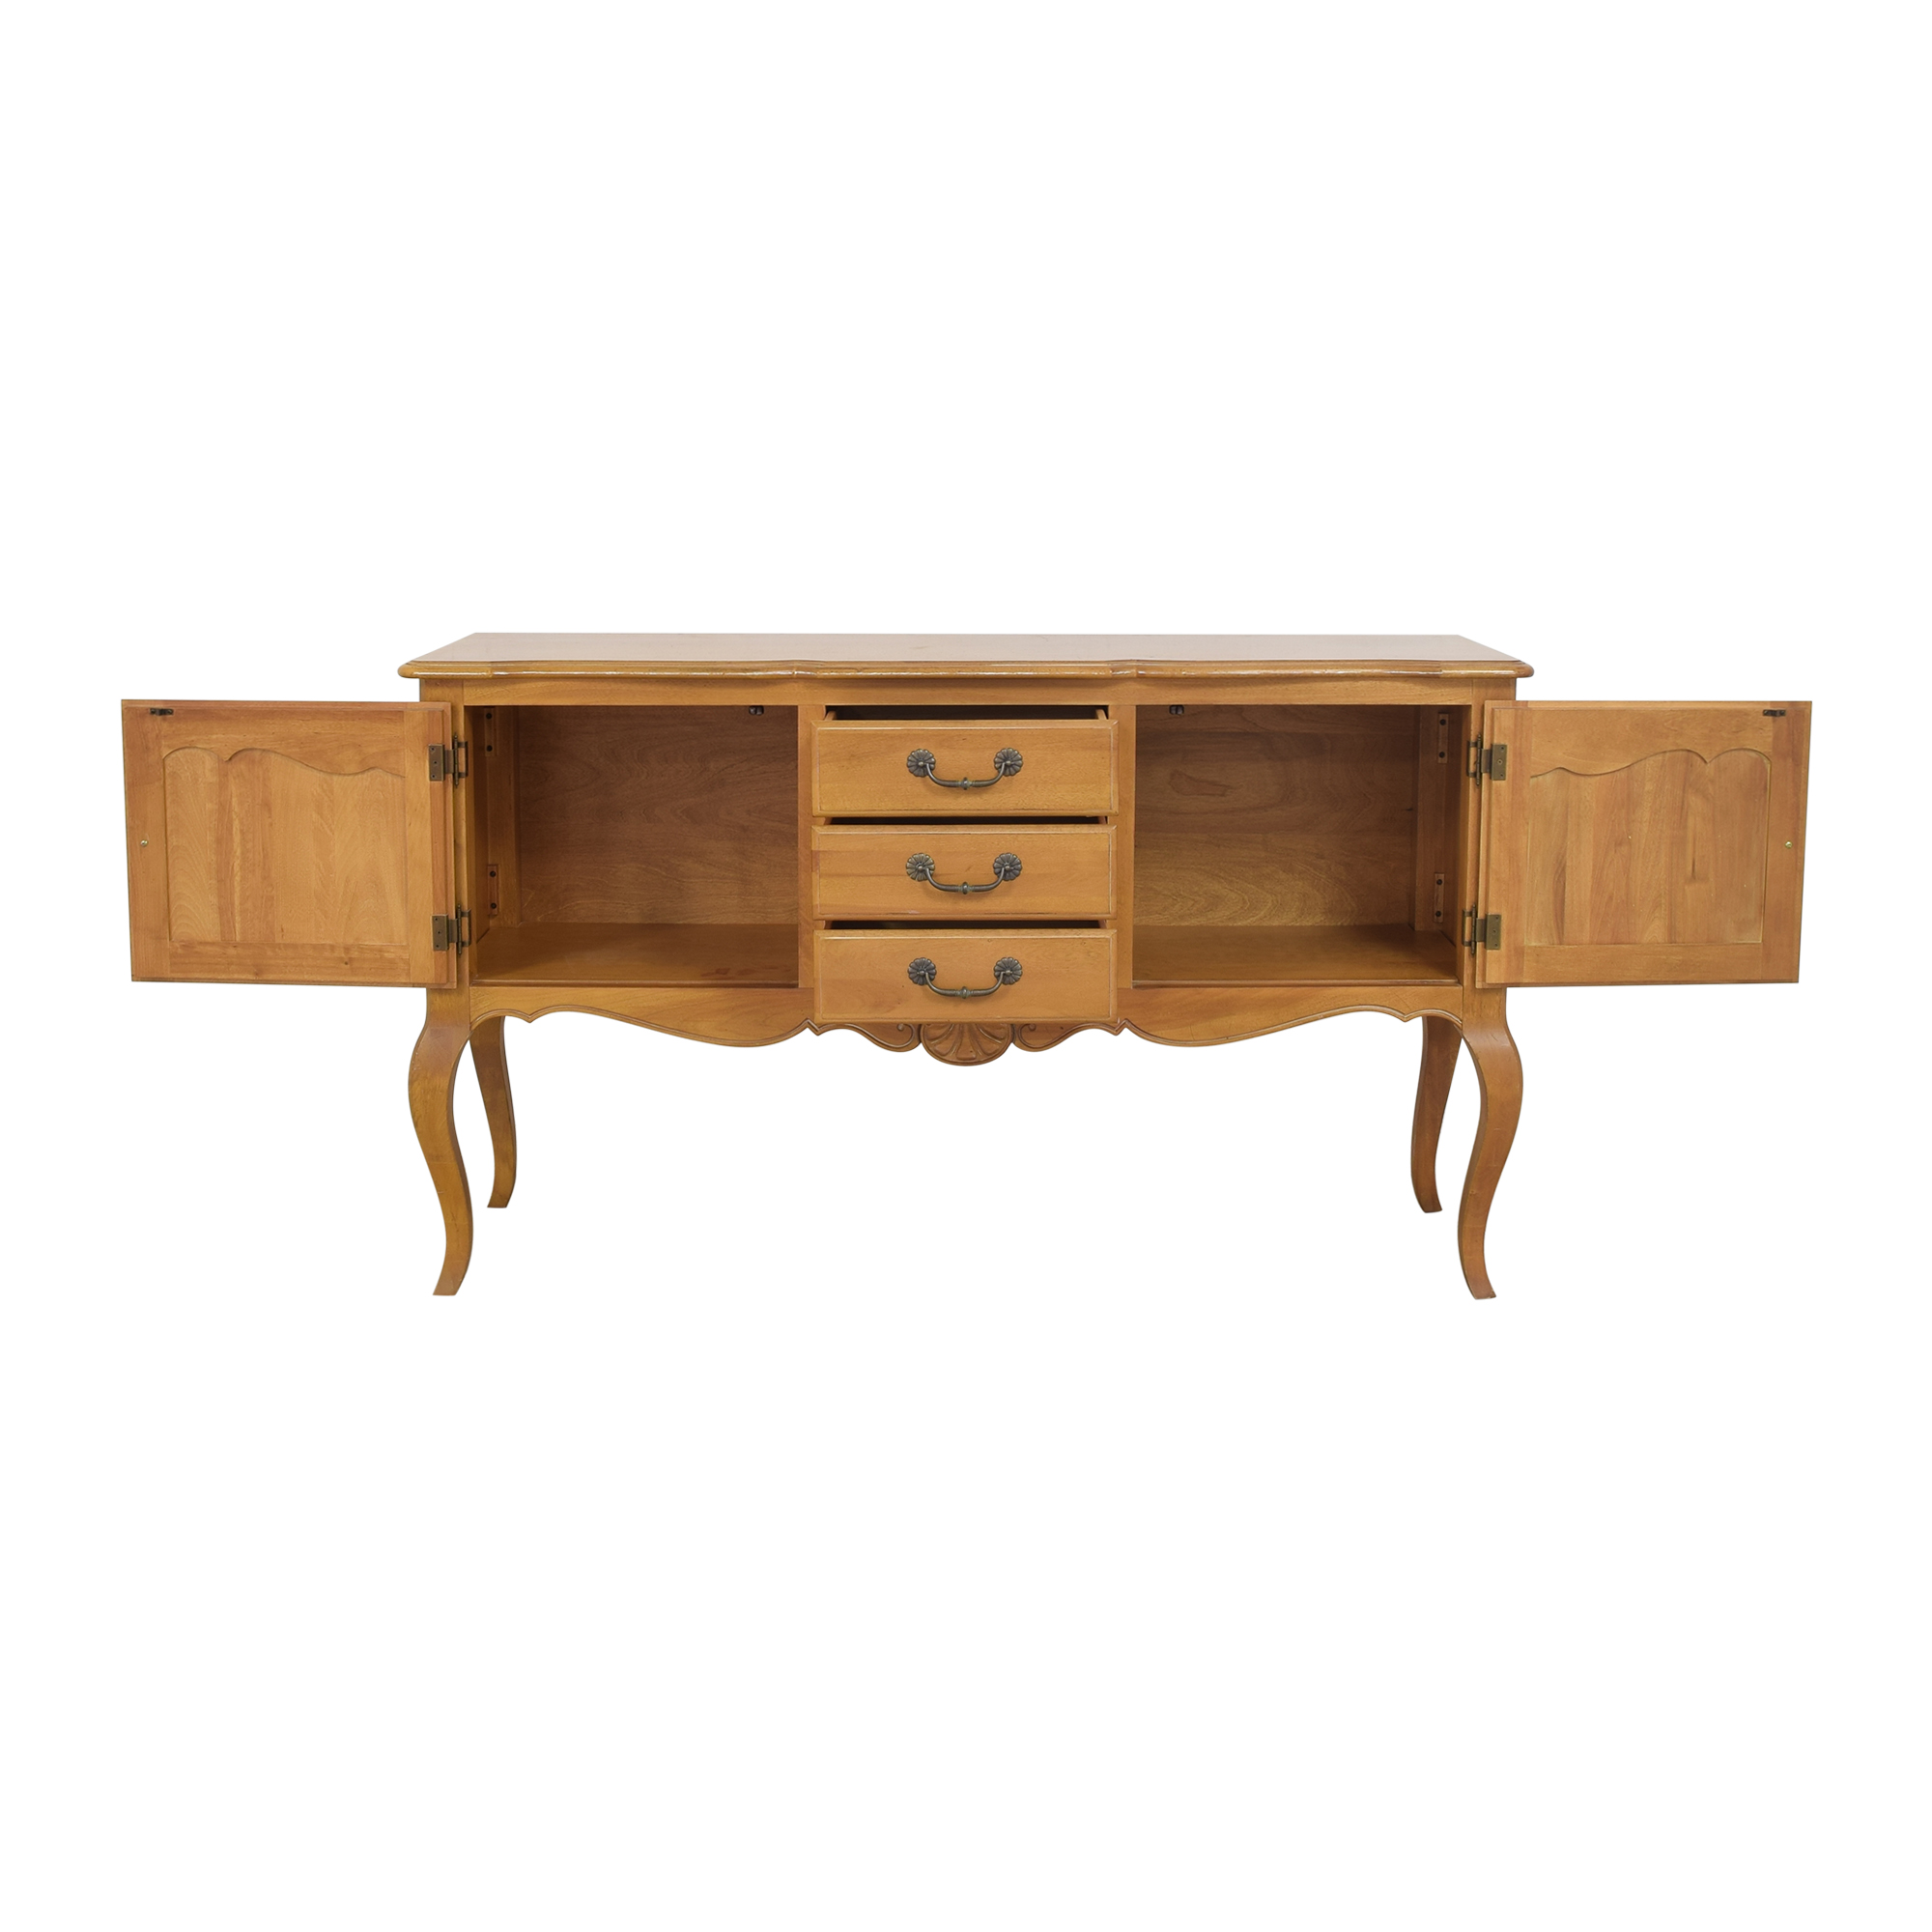 Ethan Allen Ethan Allen French Country Sideboard coupon